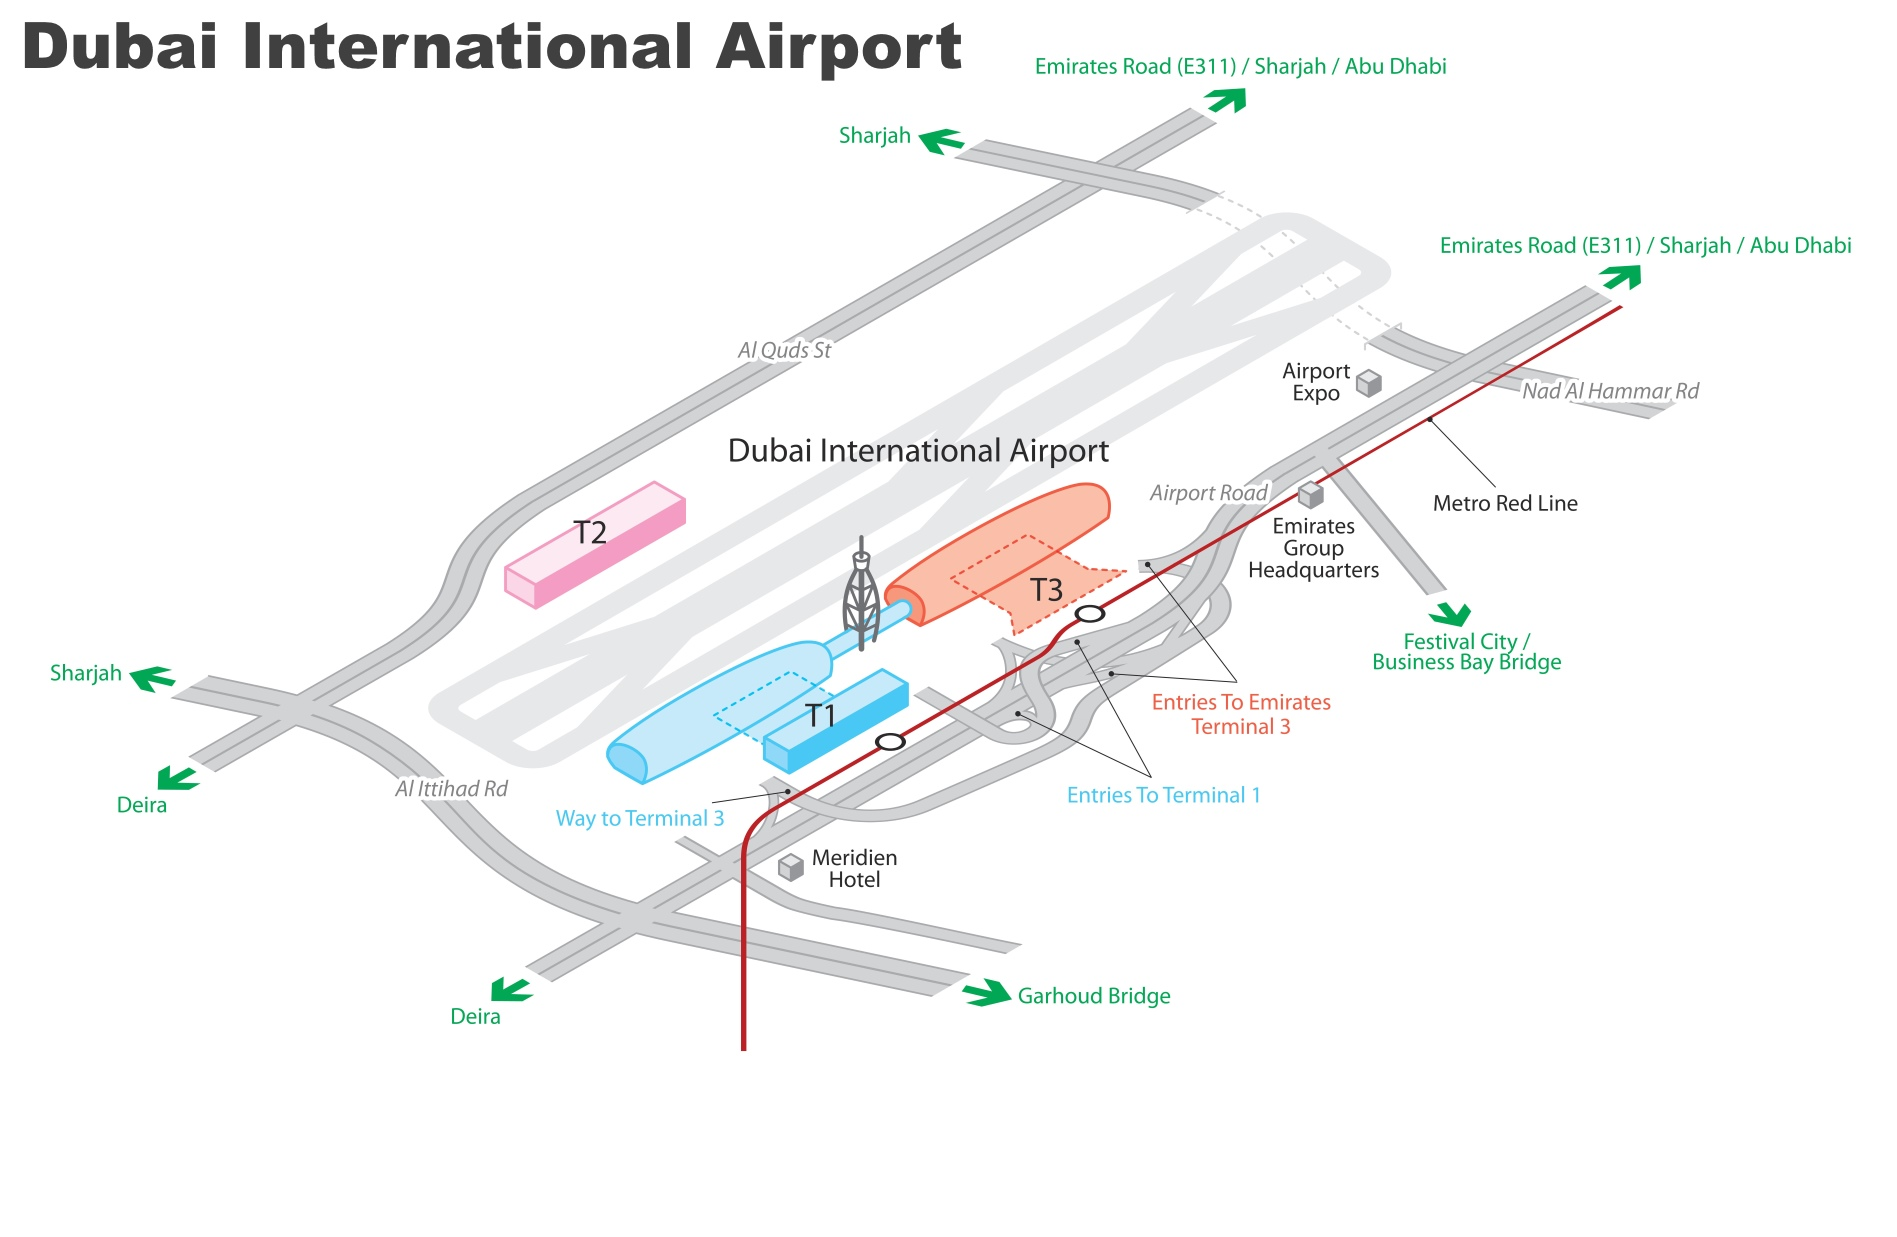 Dxb Airport Map Dubai International Airport map (DXB) Dxb Airport Map